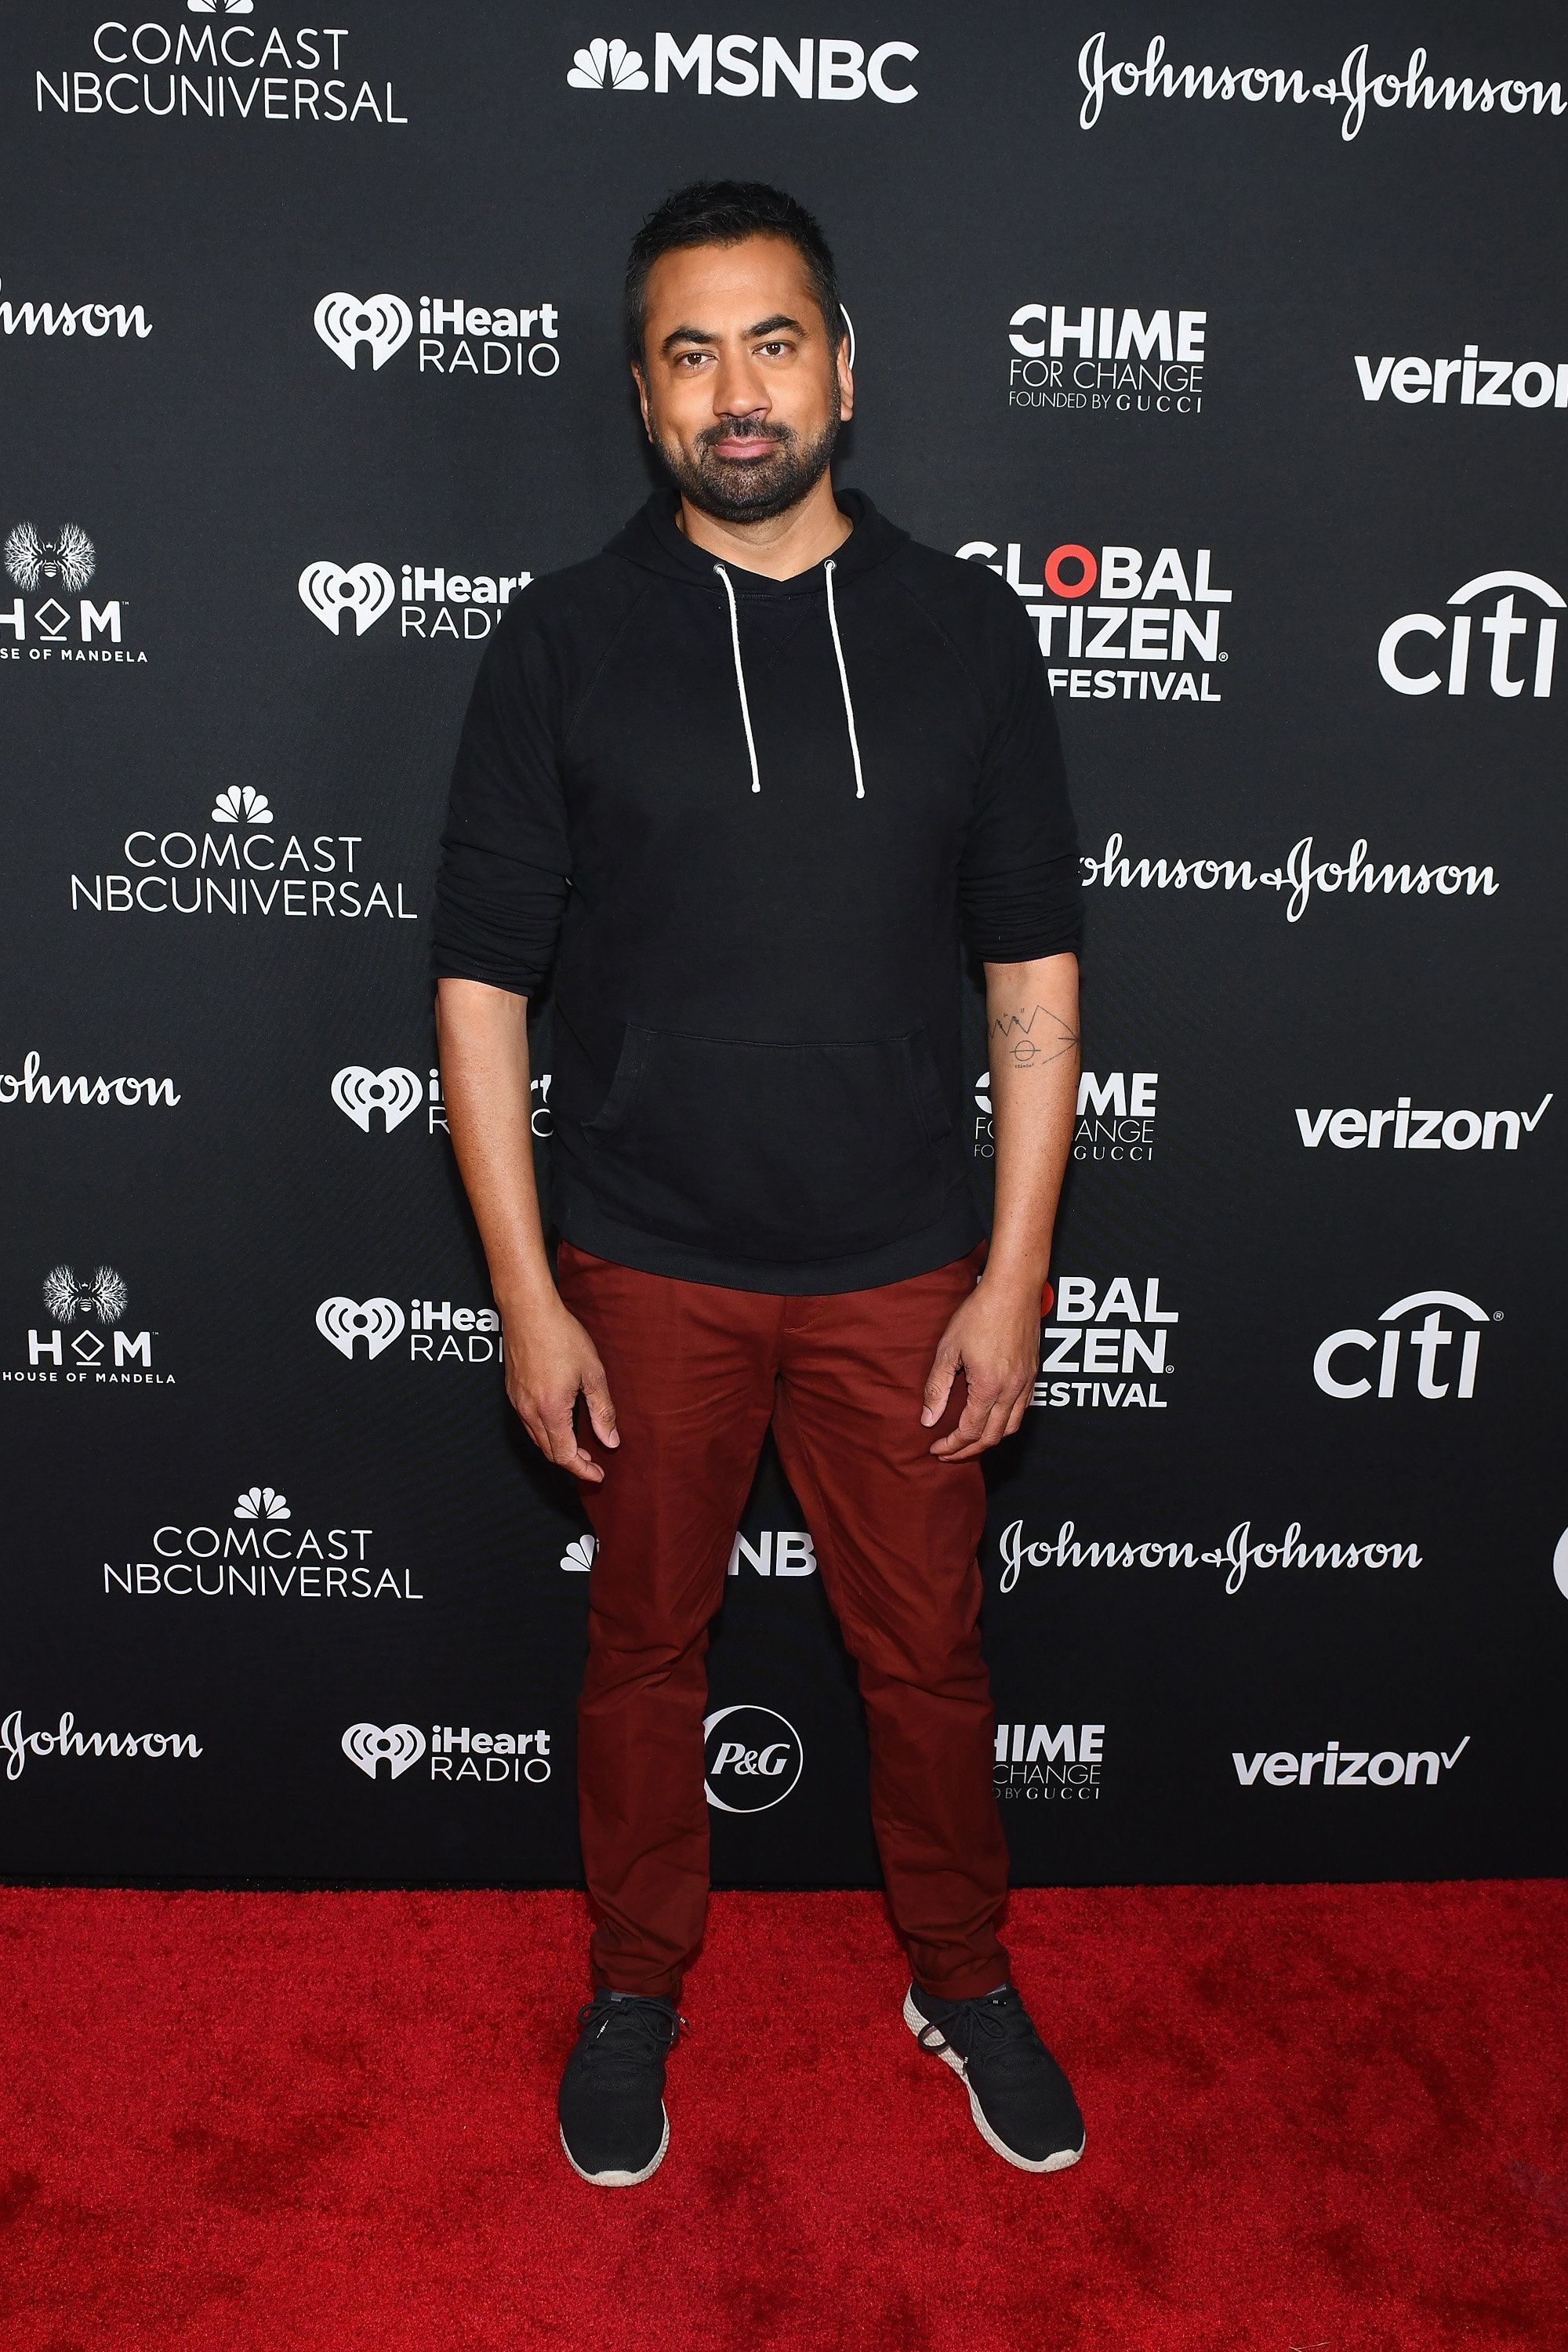 NEW YORK, NY - SEPTEMBER 29: Kal Penn attends the 2018 Global Citizen Festival: Be The Generation in Central Park on September 29, 2018 in New York City.  (Photo by Noam Galai/Getty Images for Global Citizen)